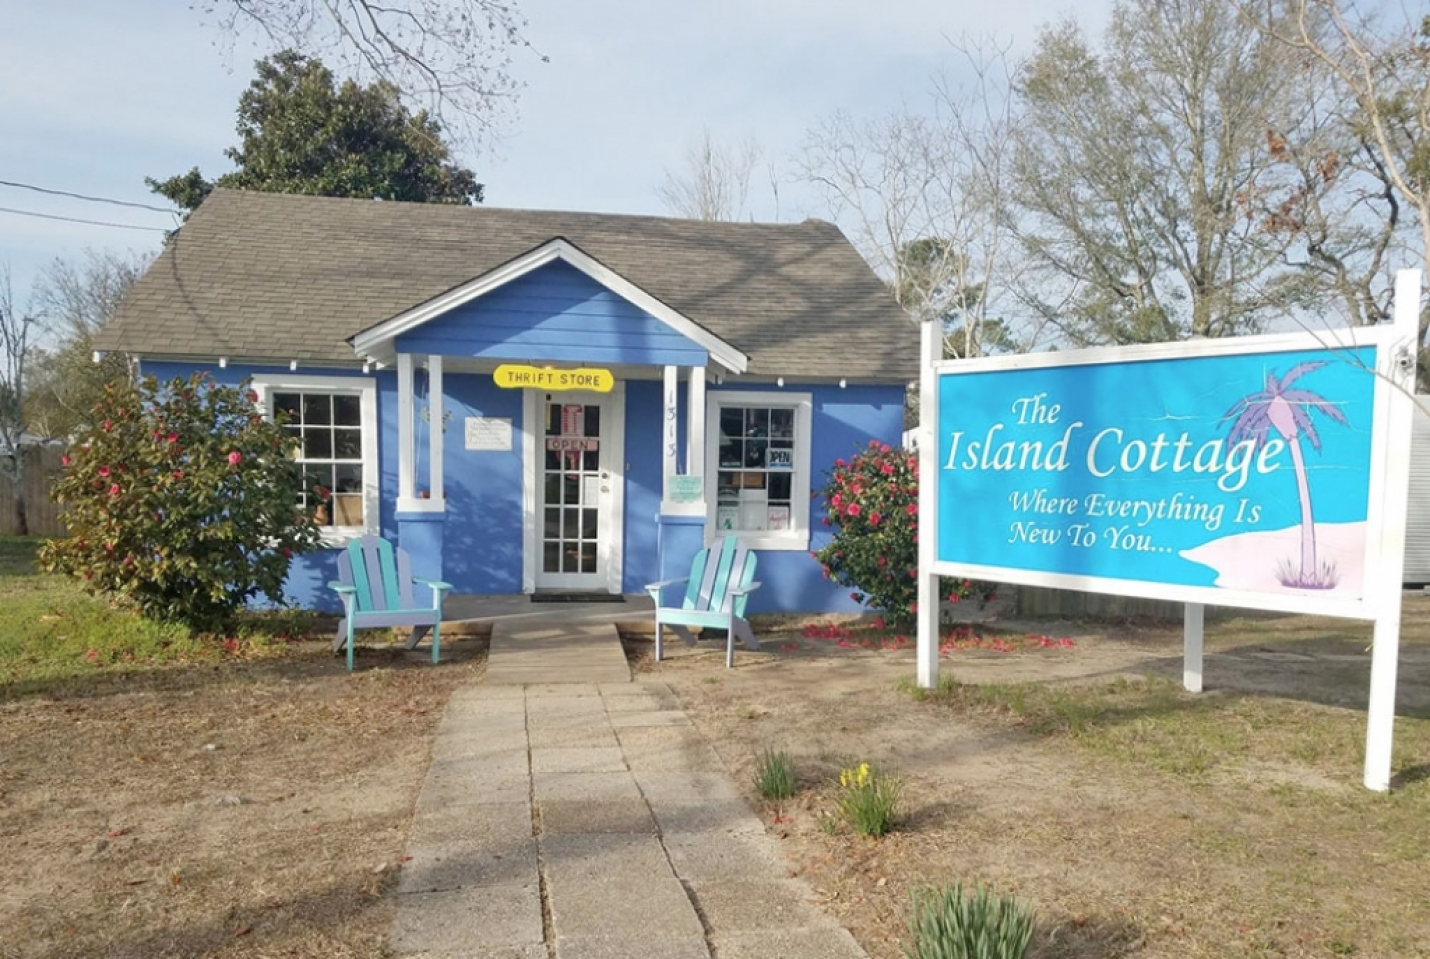 Island Cottage is at 1313 Bridge Barrier Road, and the hours are 10 a.m. to 5:30 p.m. Tuesday through Saturday. You can drop off any donations any time during store hours. Items that they accept are clothing, kitchen items, linens, knick-knacks, lotions and hair products not opened jewelry and small appliances. They serve everyone, no one is turned away.